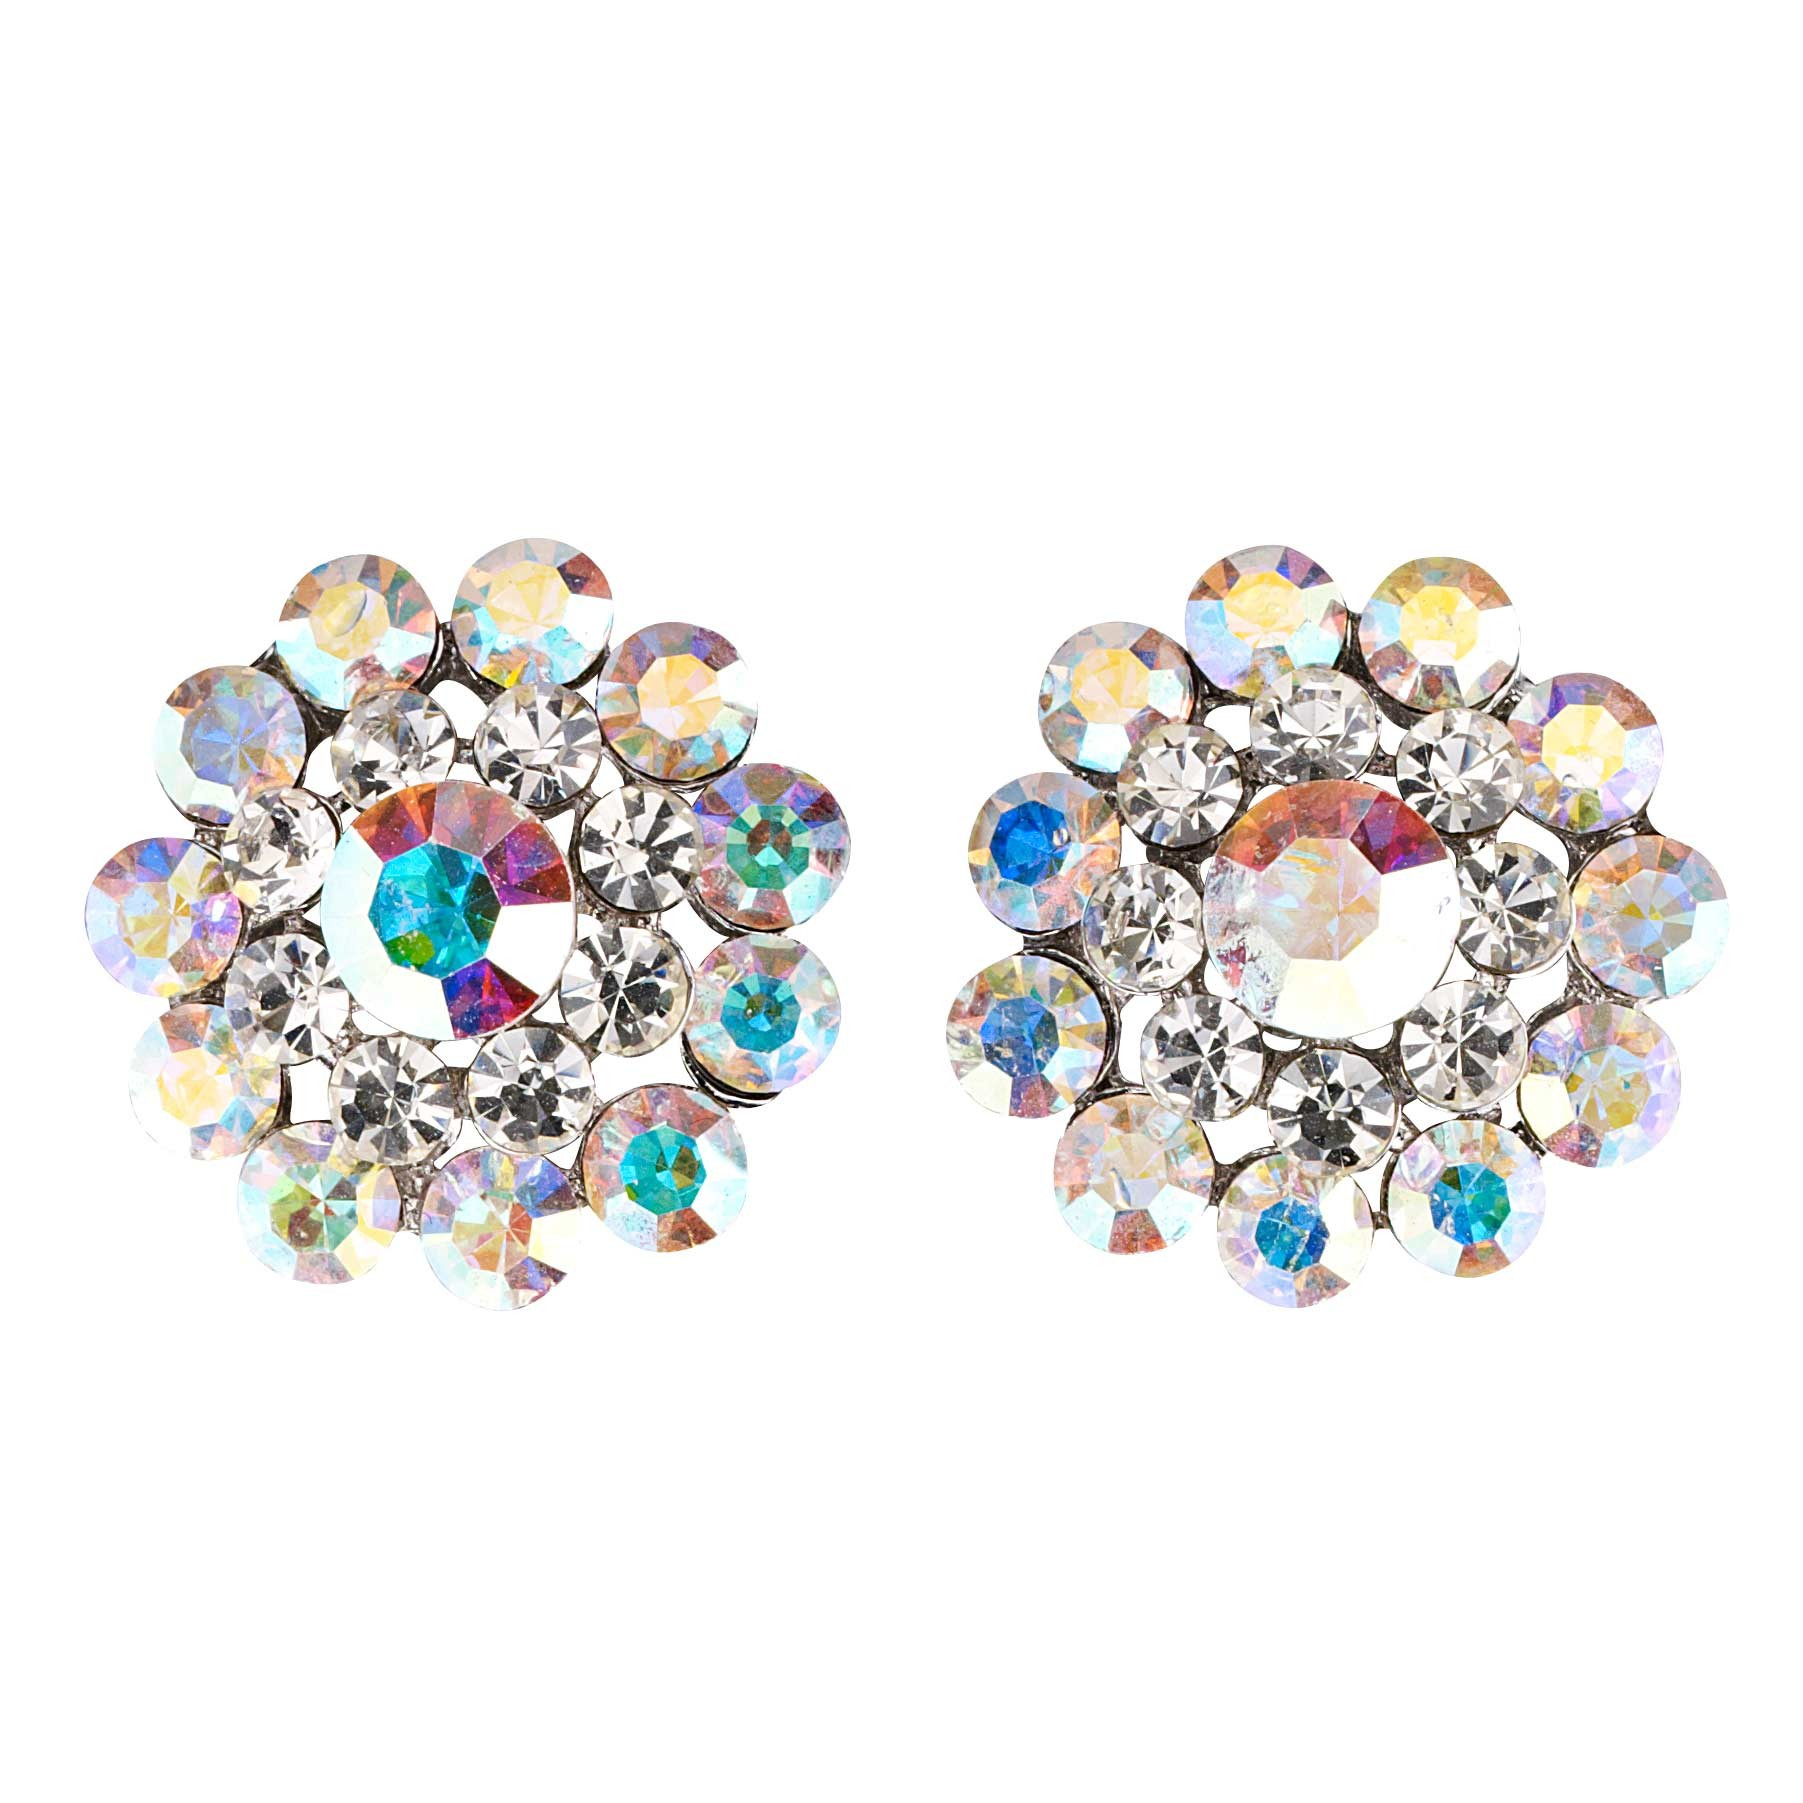 ccd0f6ed3 Swarovski Crystal Flower AB and Clear Crystal Stud Earrings - 18mm Diameter